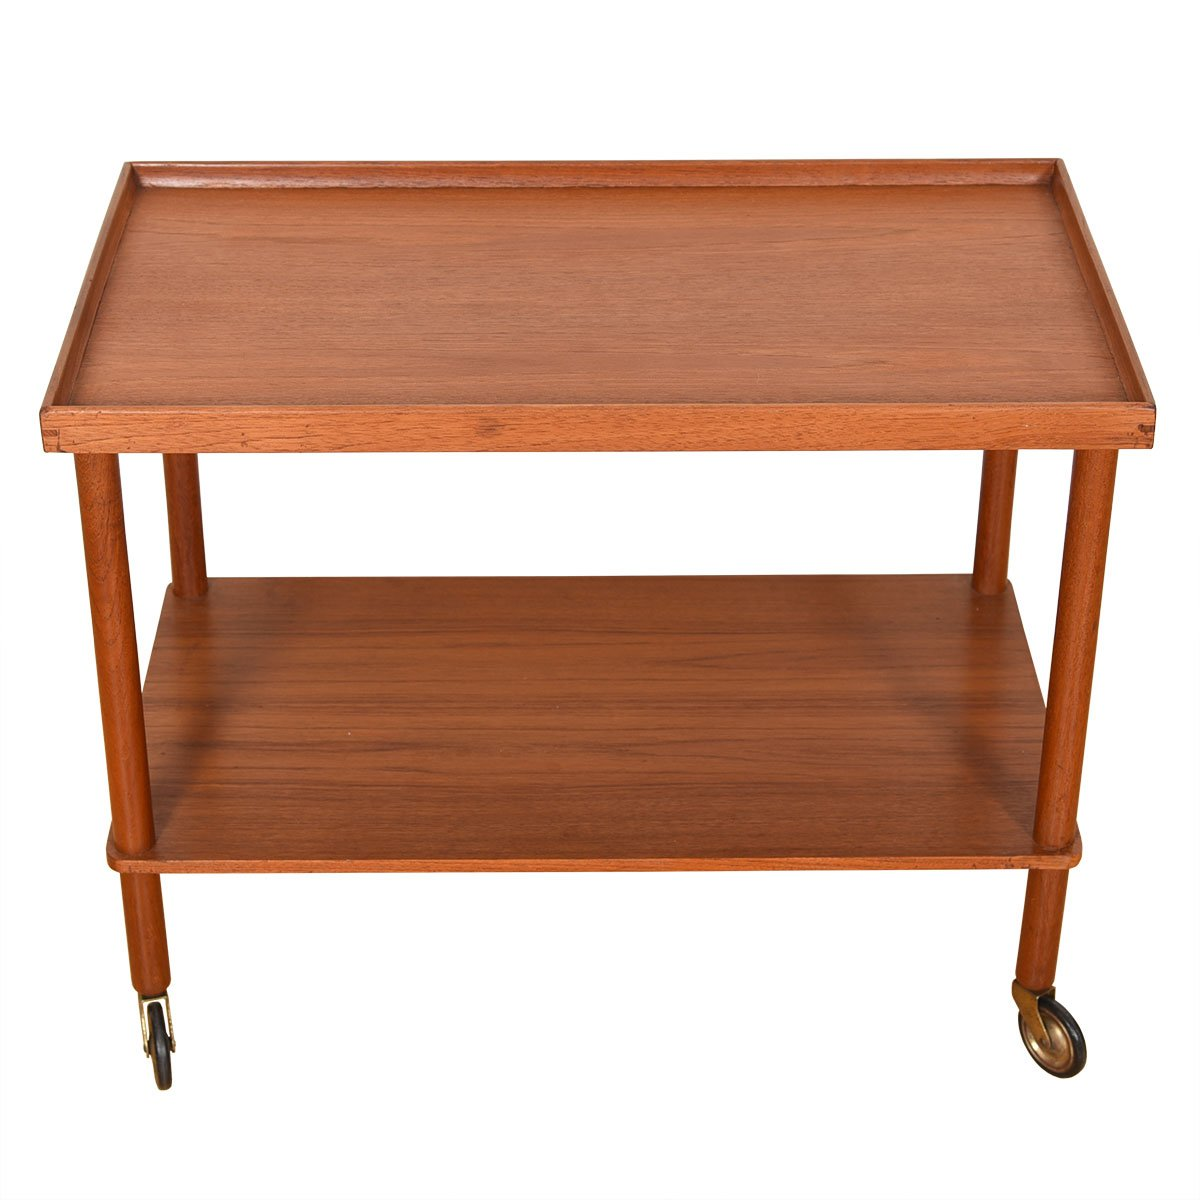 Danish Modern Teak Serving / Bar Cart w/ Lower Shelf.